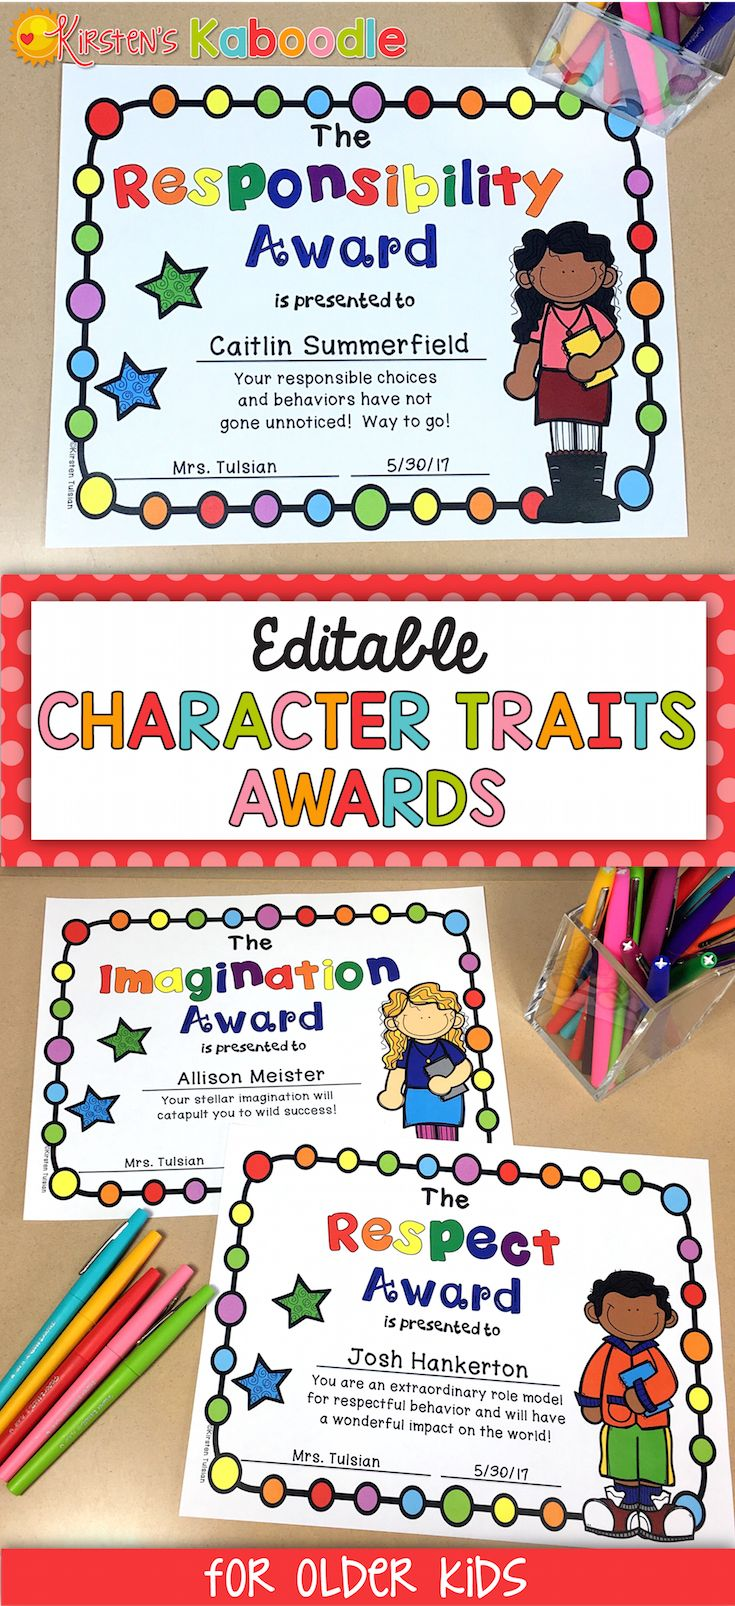 Are you looking for unique, editable awards for your students? These character traits awards are perfect for any 3rd, 4th, 5th, or 6th grade classroom. The best part about these end of year awards is that they celebrate inherent traits in your students instead of focusing on abilities or skills. Each award comes in various versions (black and white, color, gender, and ethnicity) with editable fields for names and date. Go ahead, help your students feel proud of WHO THEY ARE and not what they…